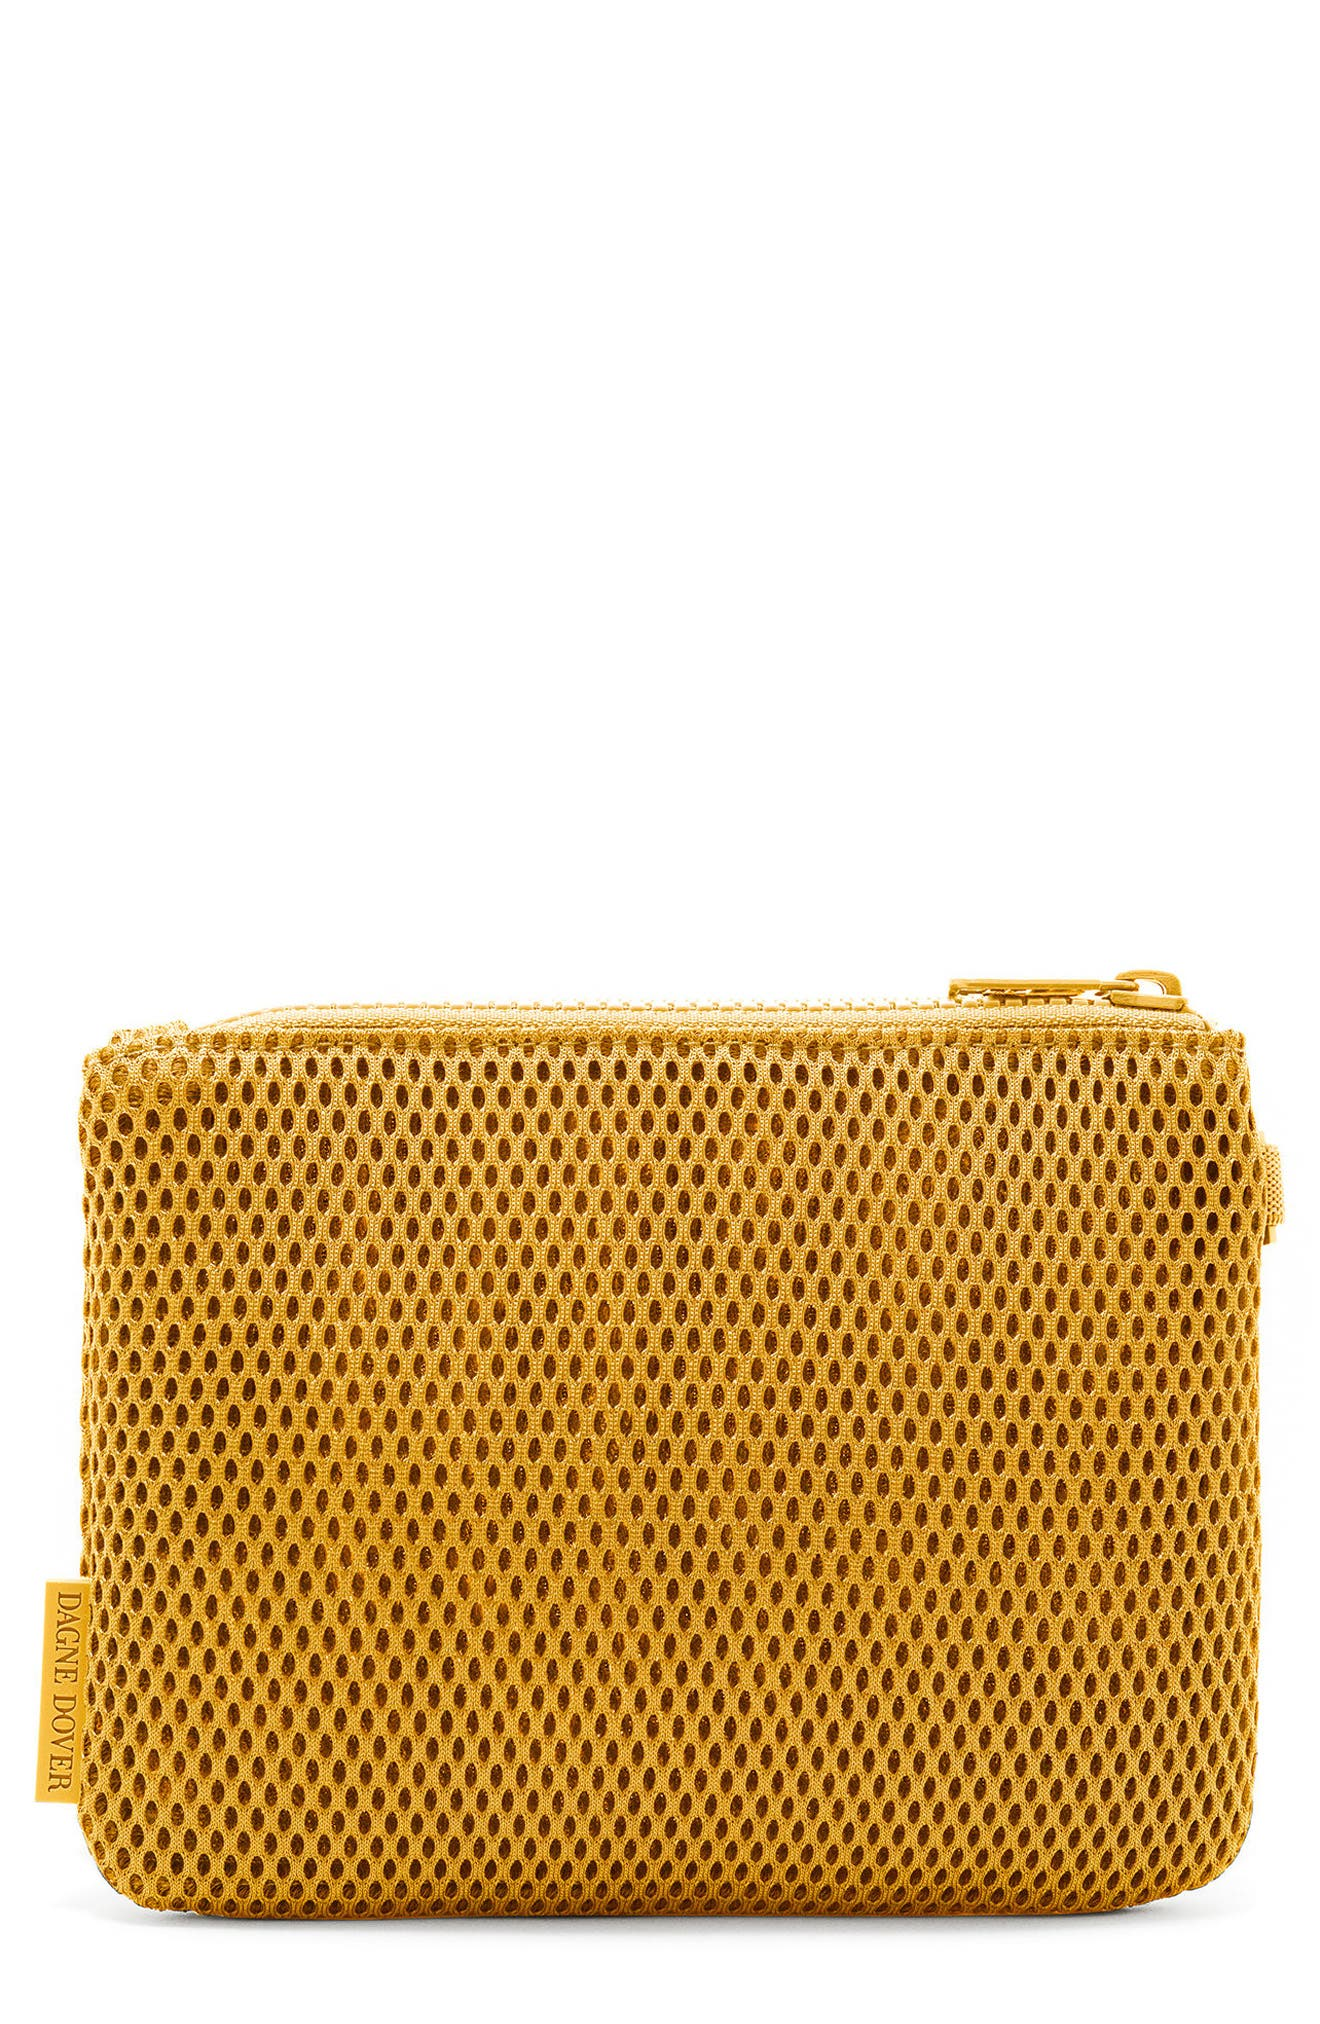 SMALL PARKER MESH POUCH - YELLOW